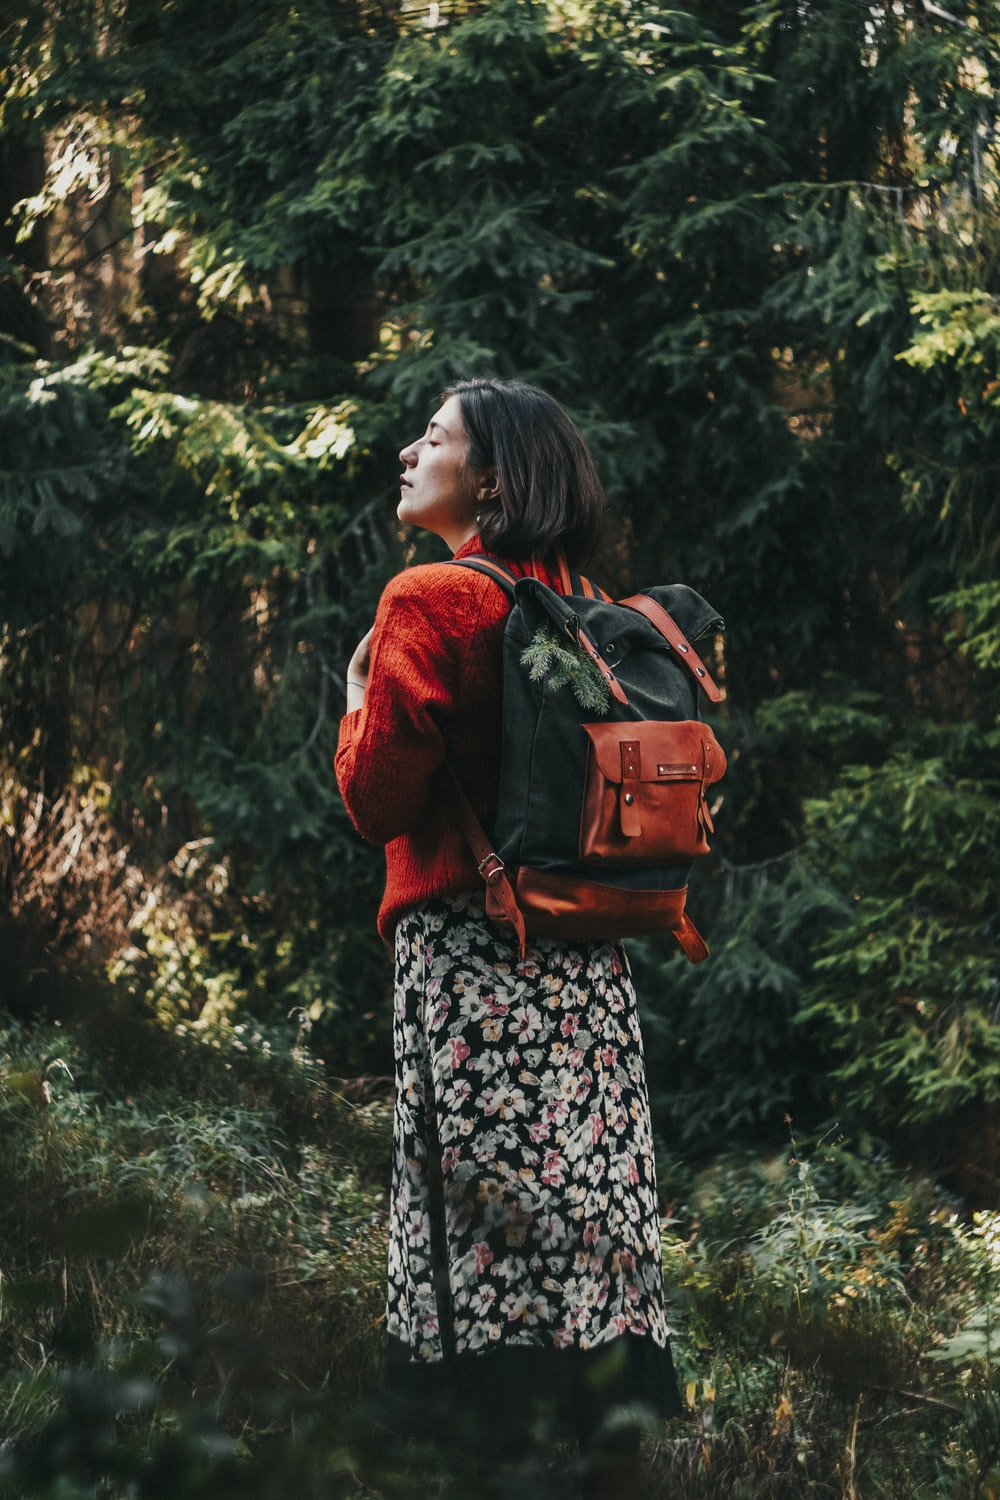 woman in red jacket carrying brown leather backpack